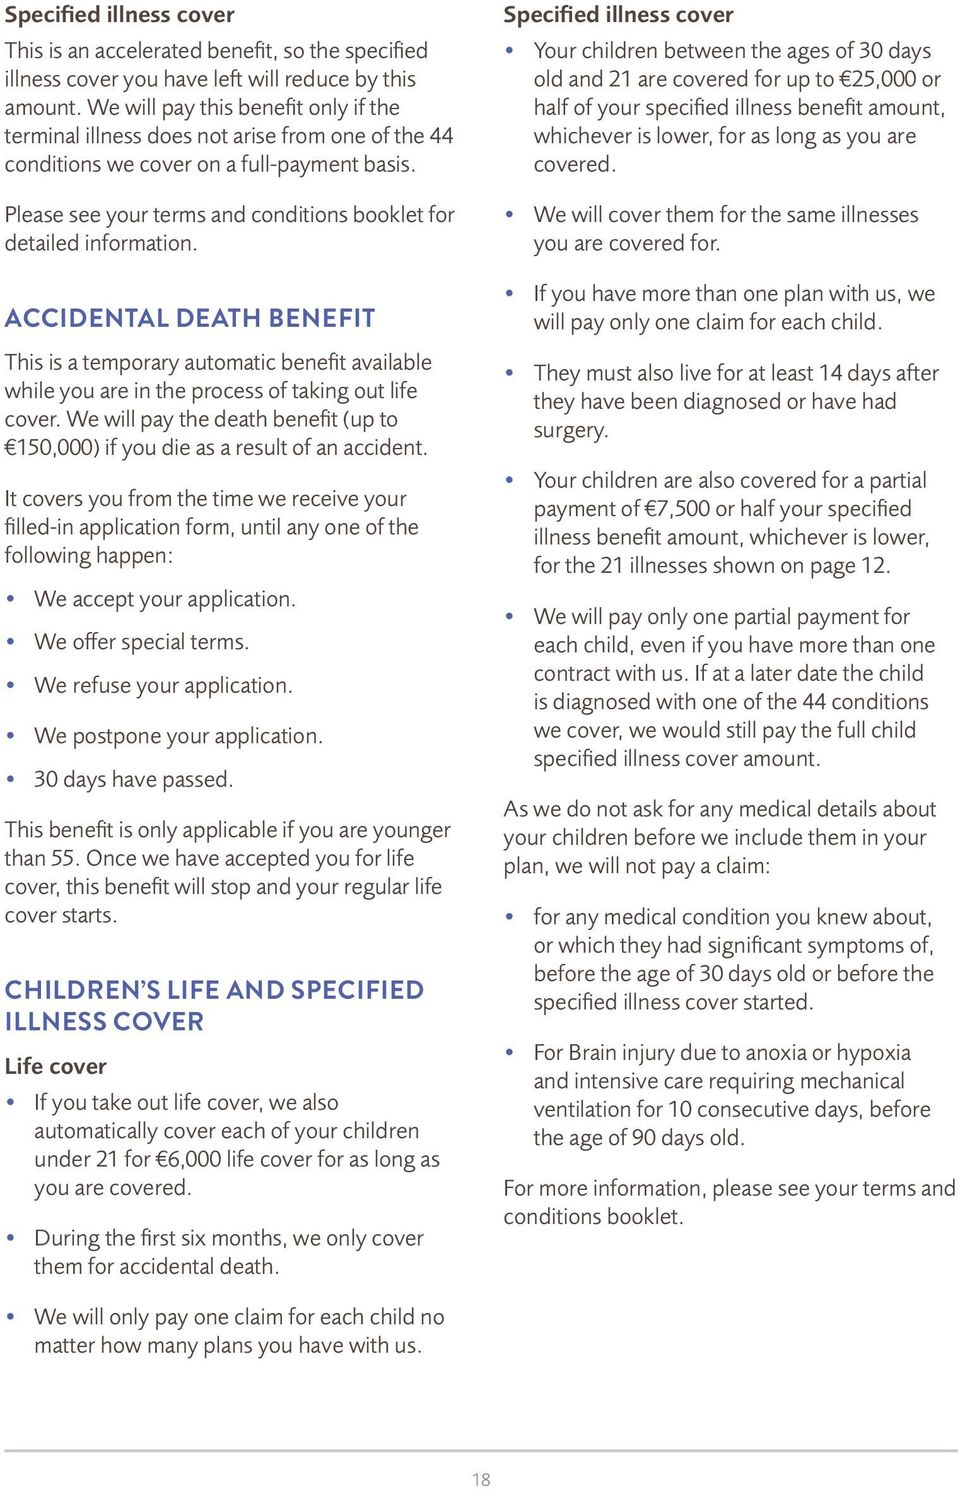 Please see your terms and conditions booklet for detailed information. ACCIDENTAL DEATH BENEFIT This is a temporary automatic benefit available while you are in the process of taking out life cover.